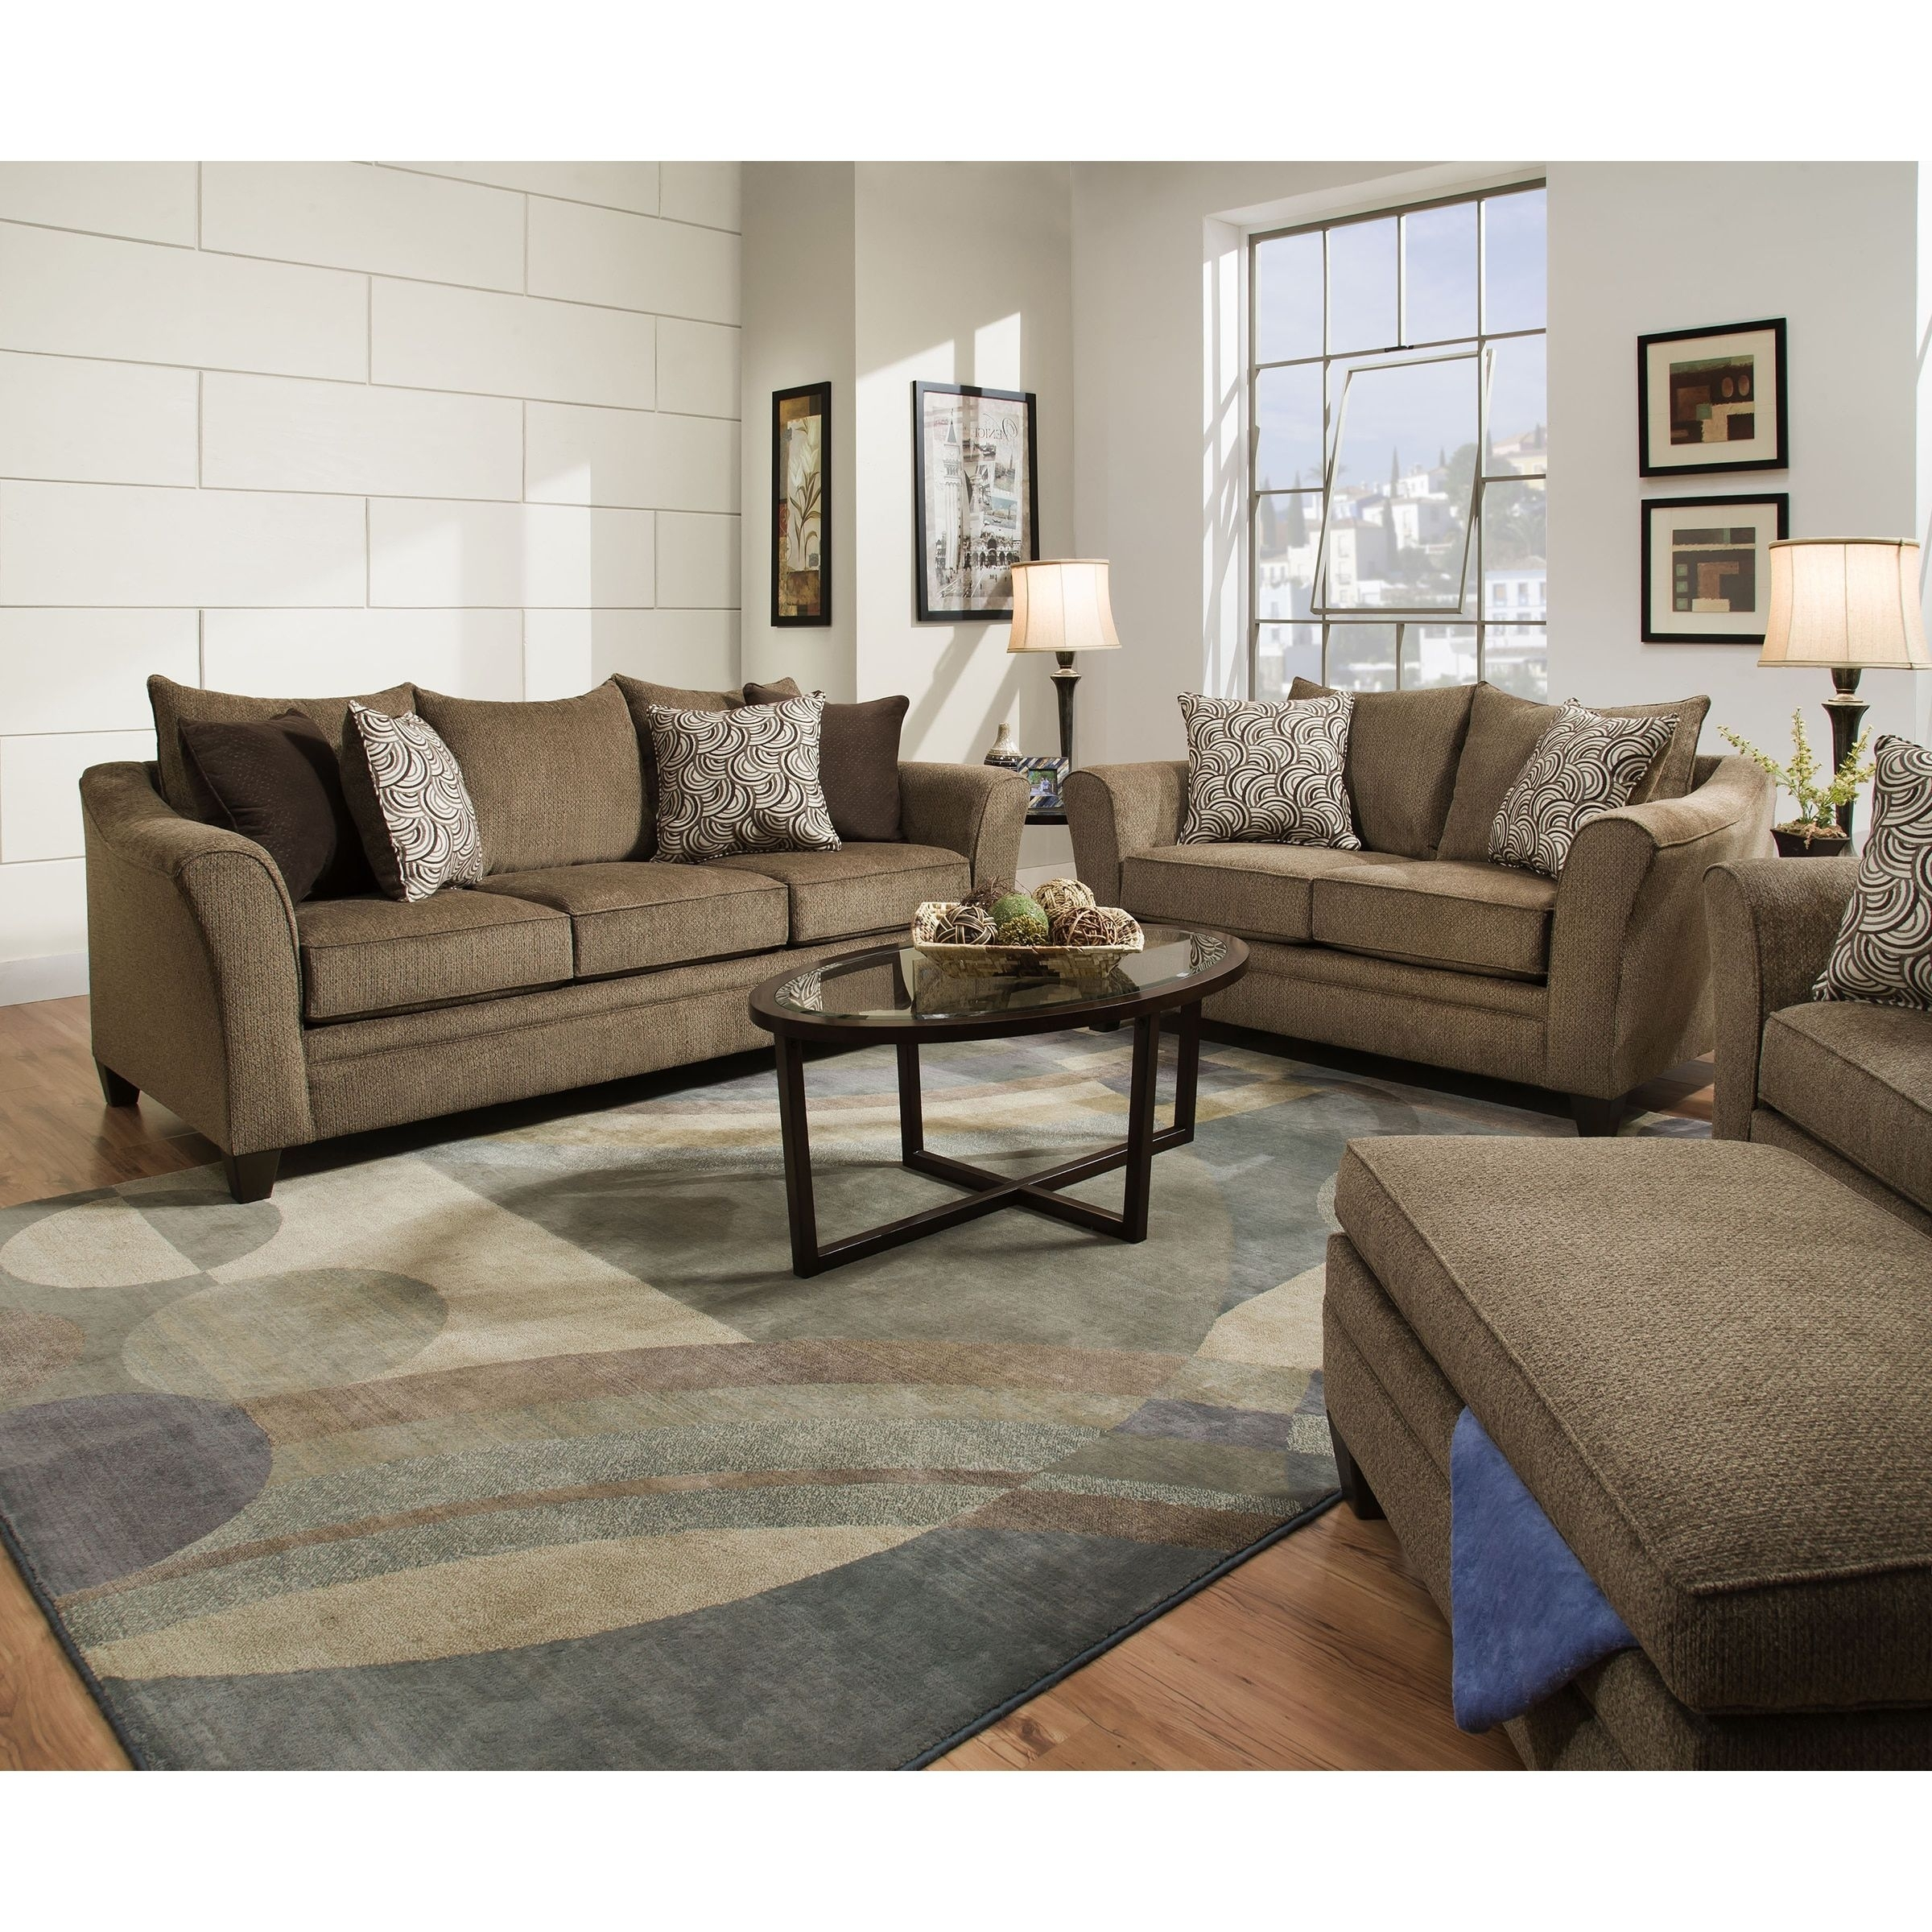 """Alvarez Natural Wool Blend 12""""x18"""" Rug Swatch Inside Adeline 3 Piece Sectionals (View 23 of 25)"""